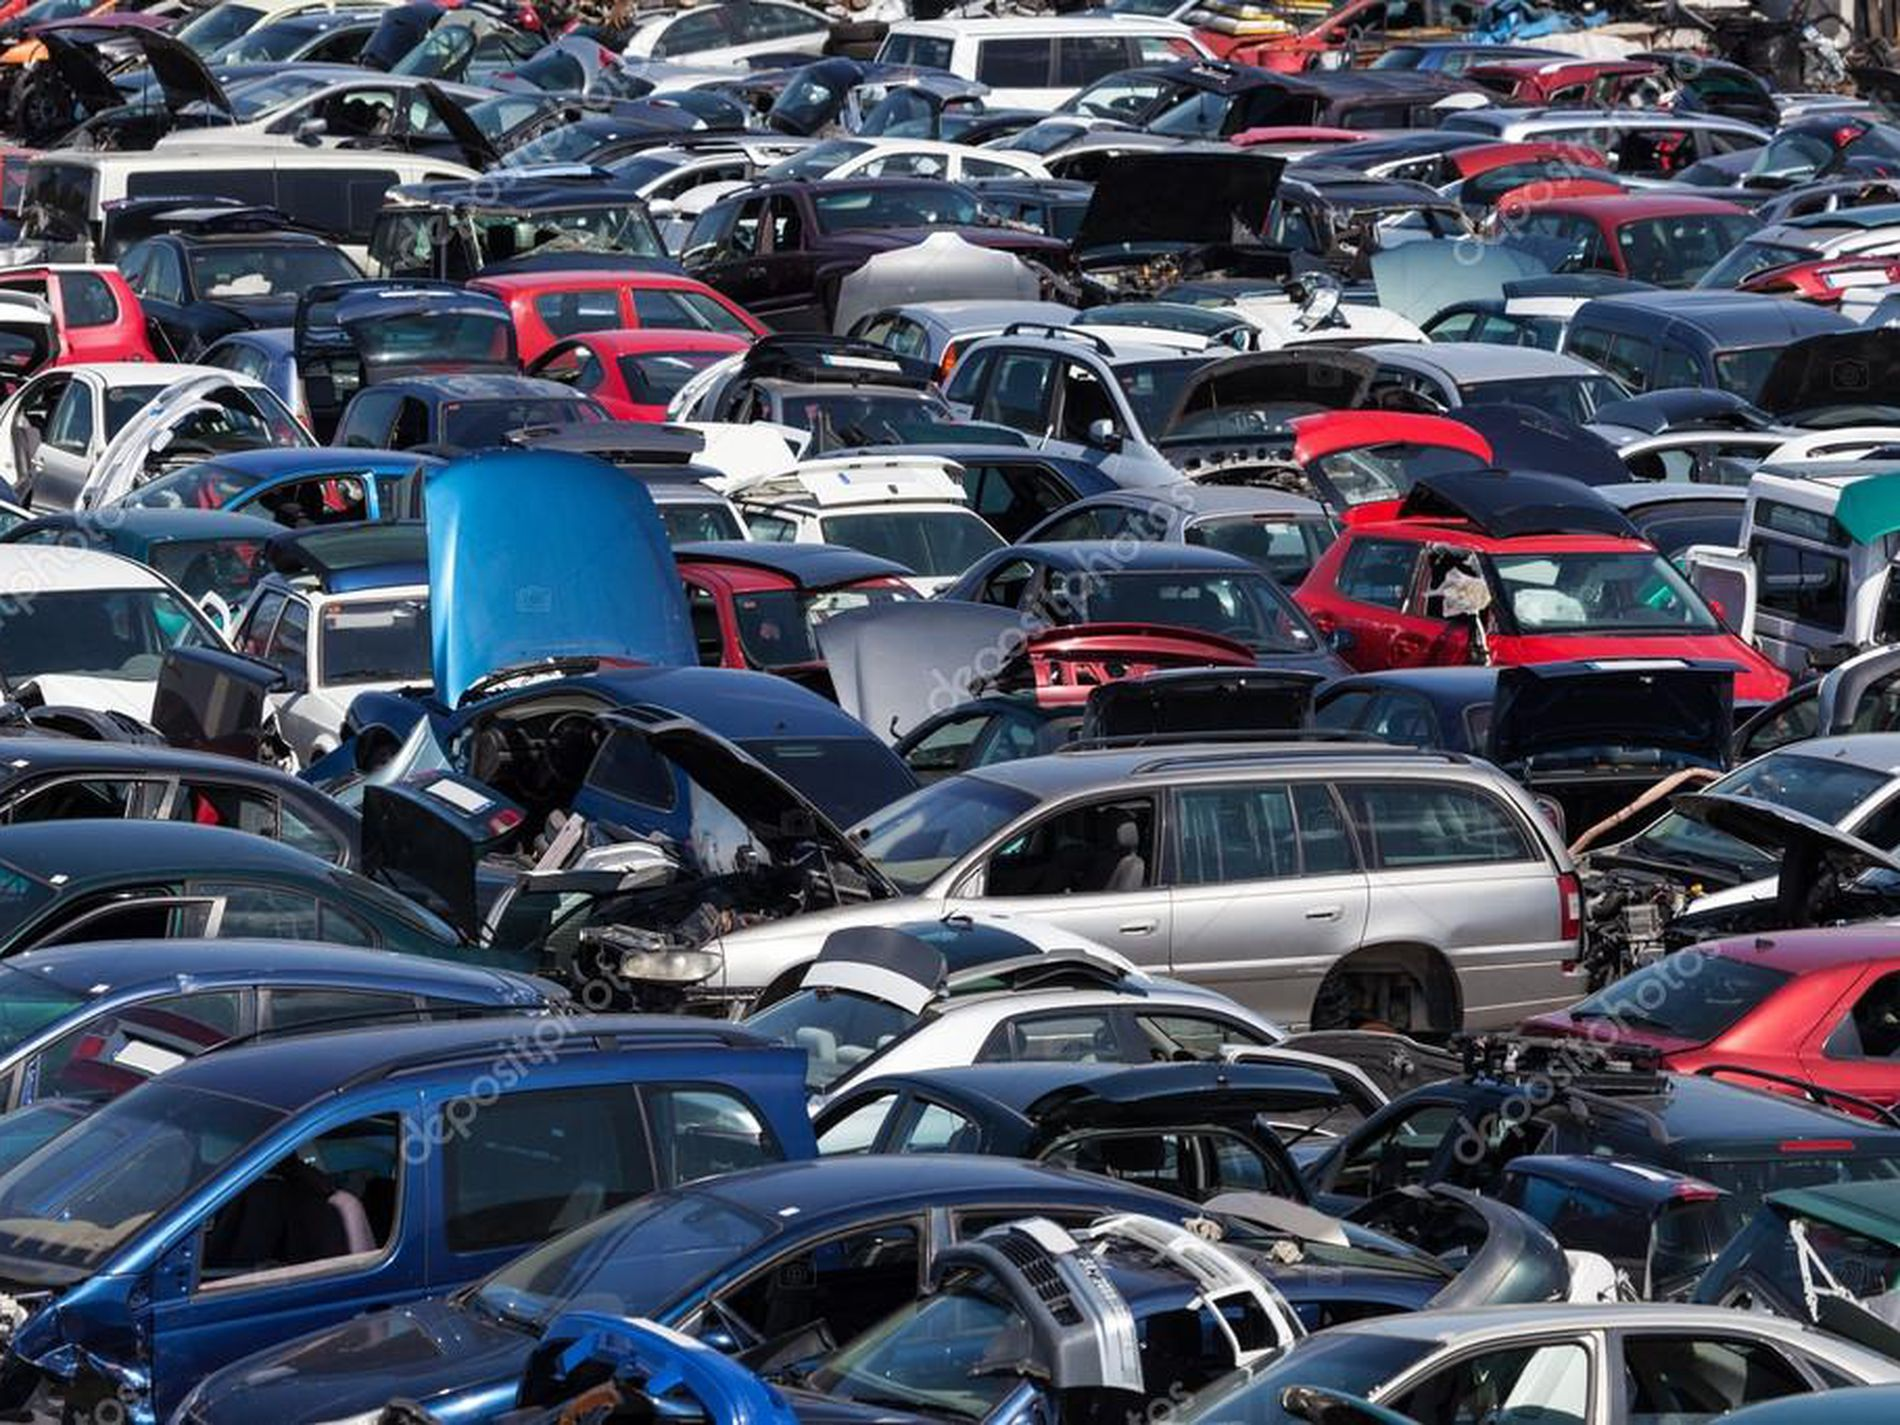 SOLD - Car Wreckers & Mechanical Repair Business For Sale